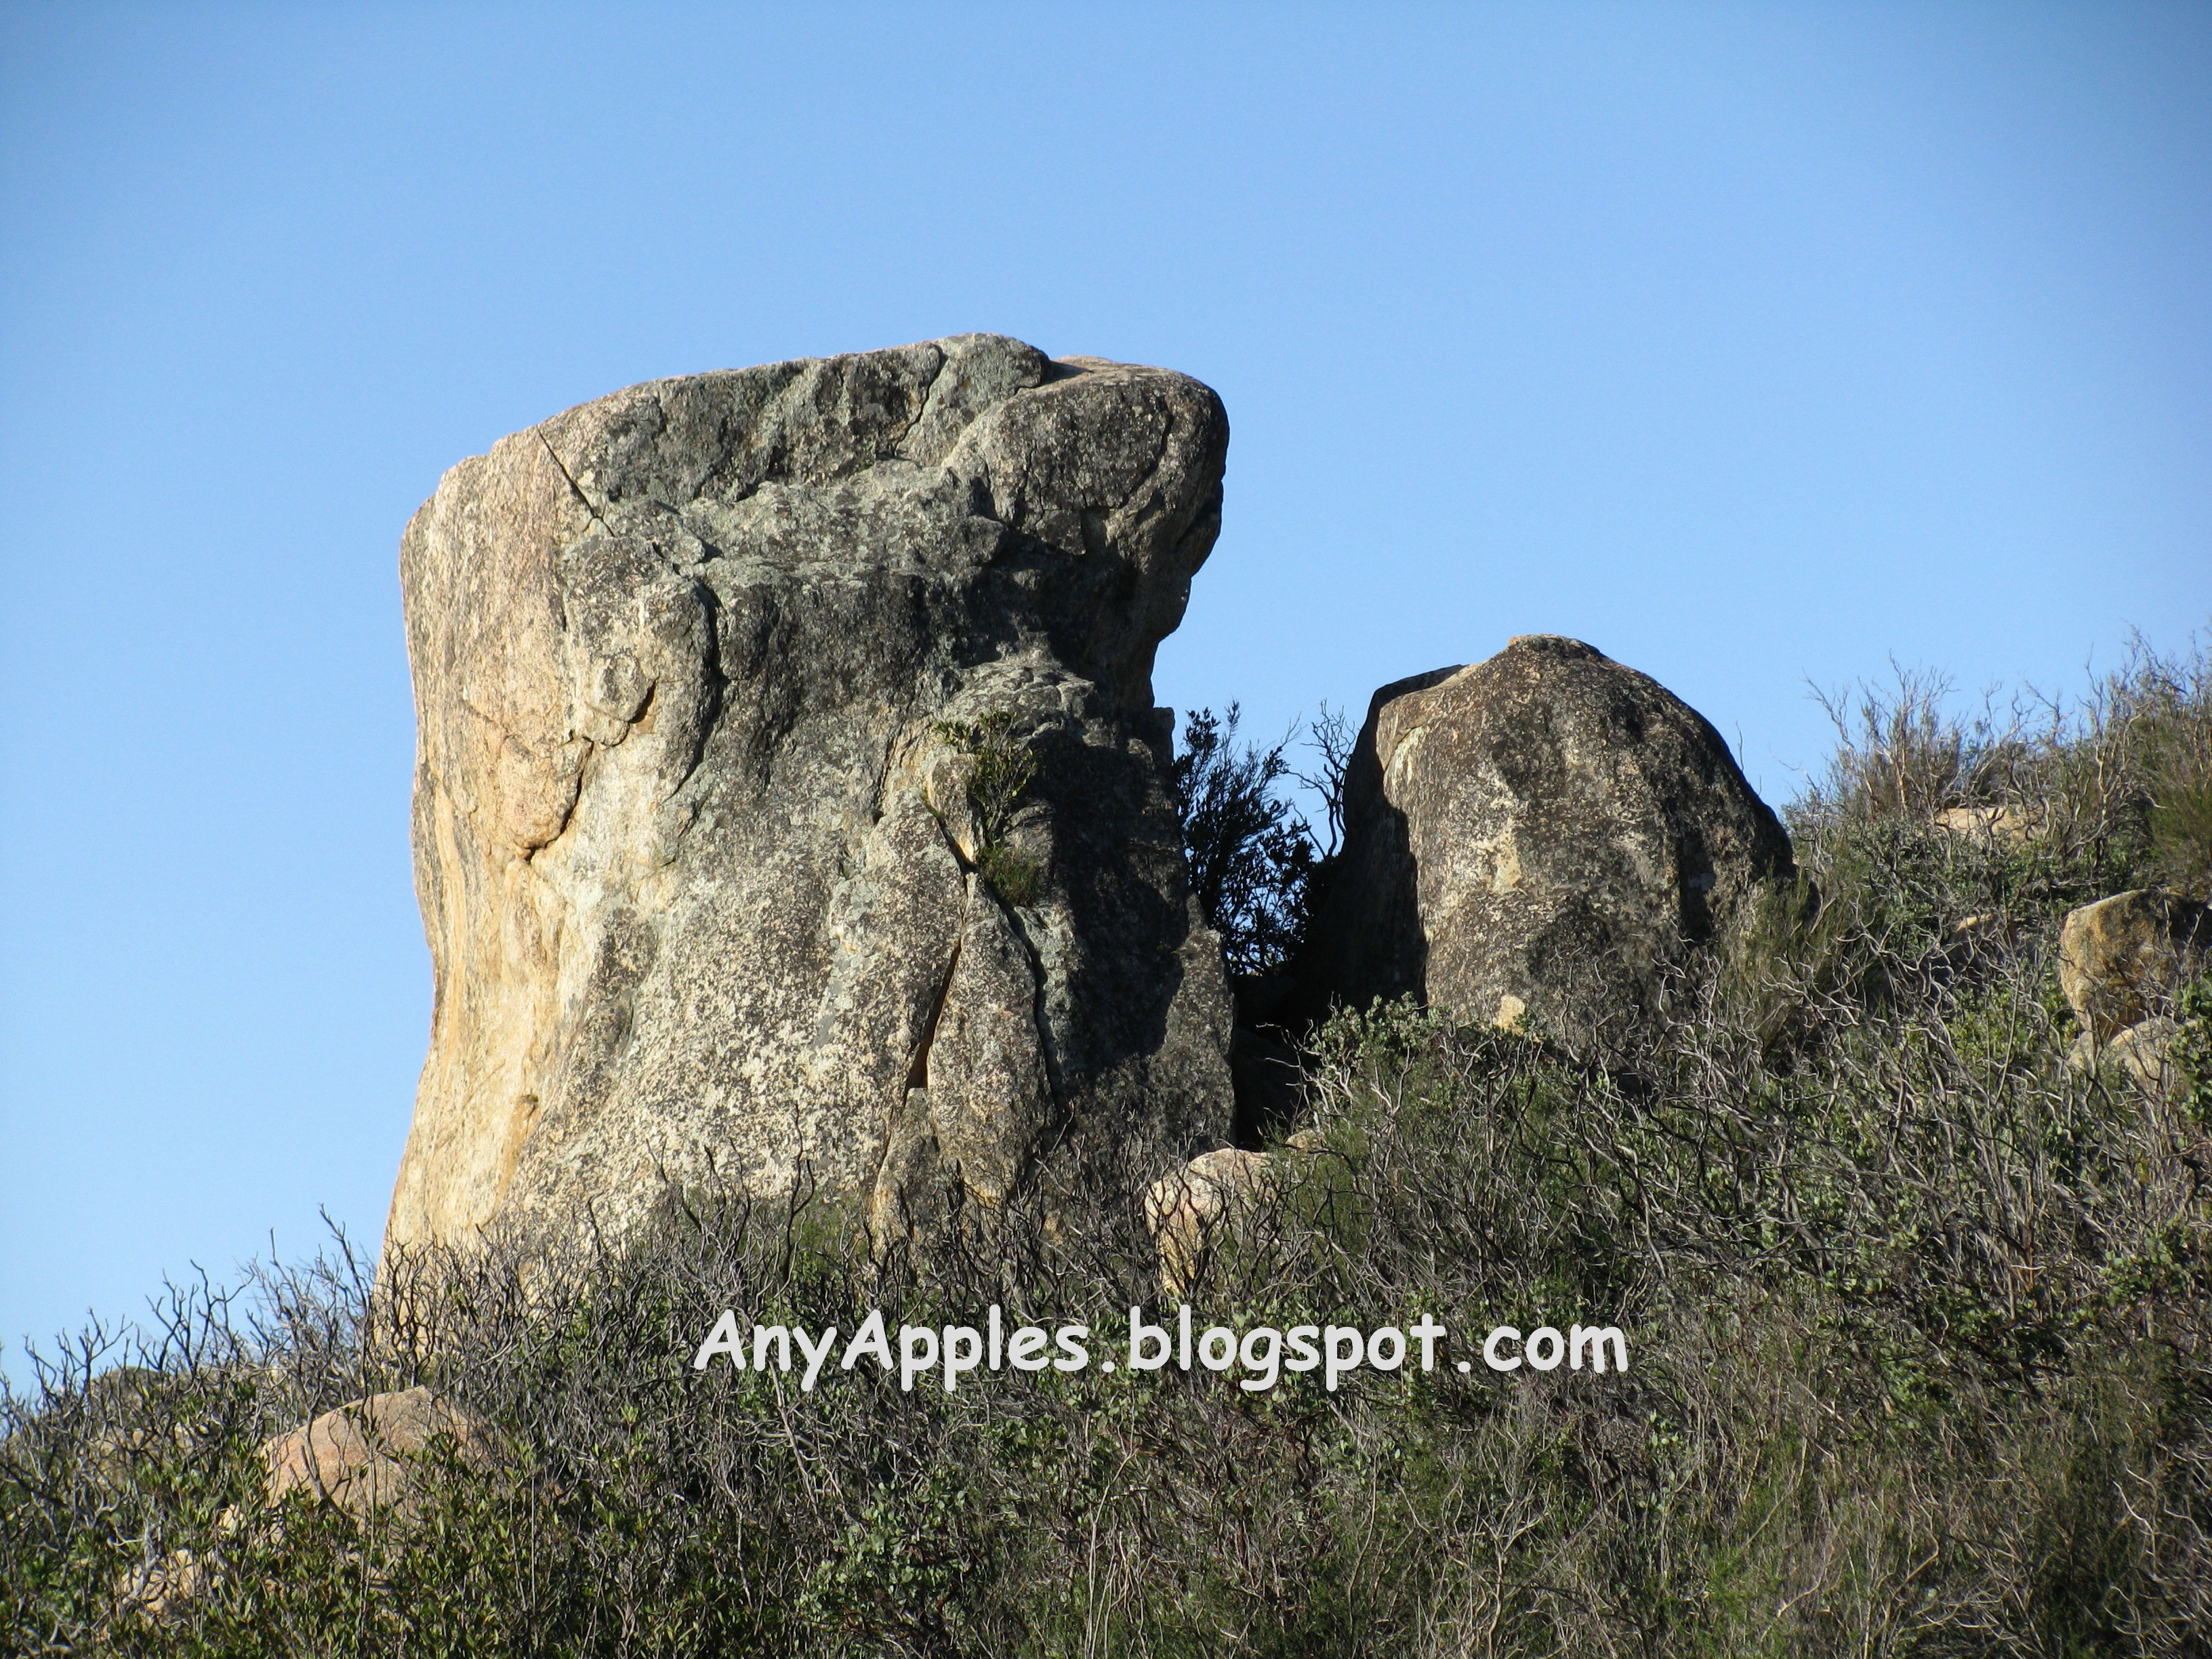 santa ysabel black singles Latest message: part 3, black panther  rock singles november hike  where: santa ysabel east staging area, .